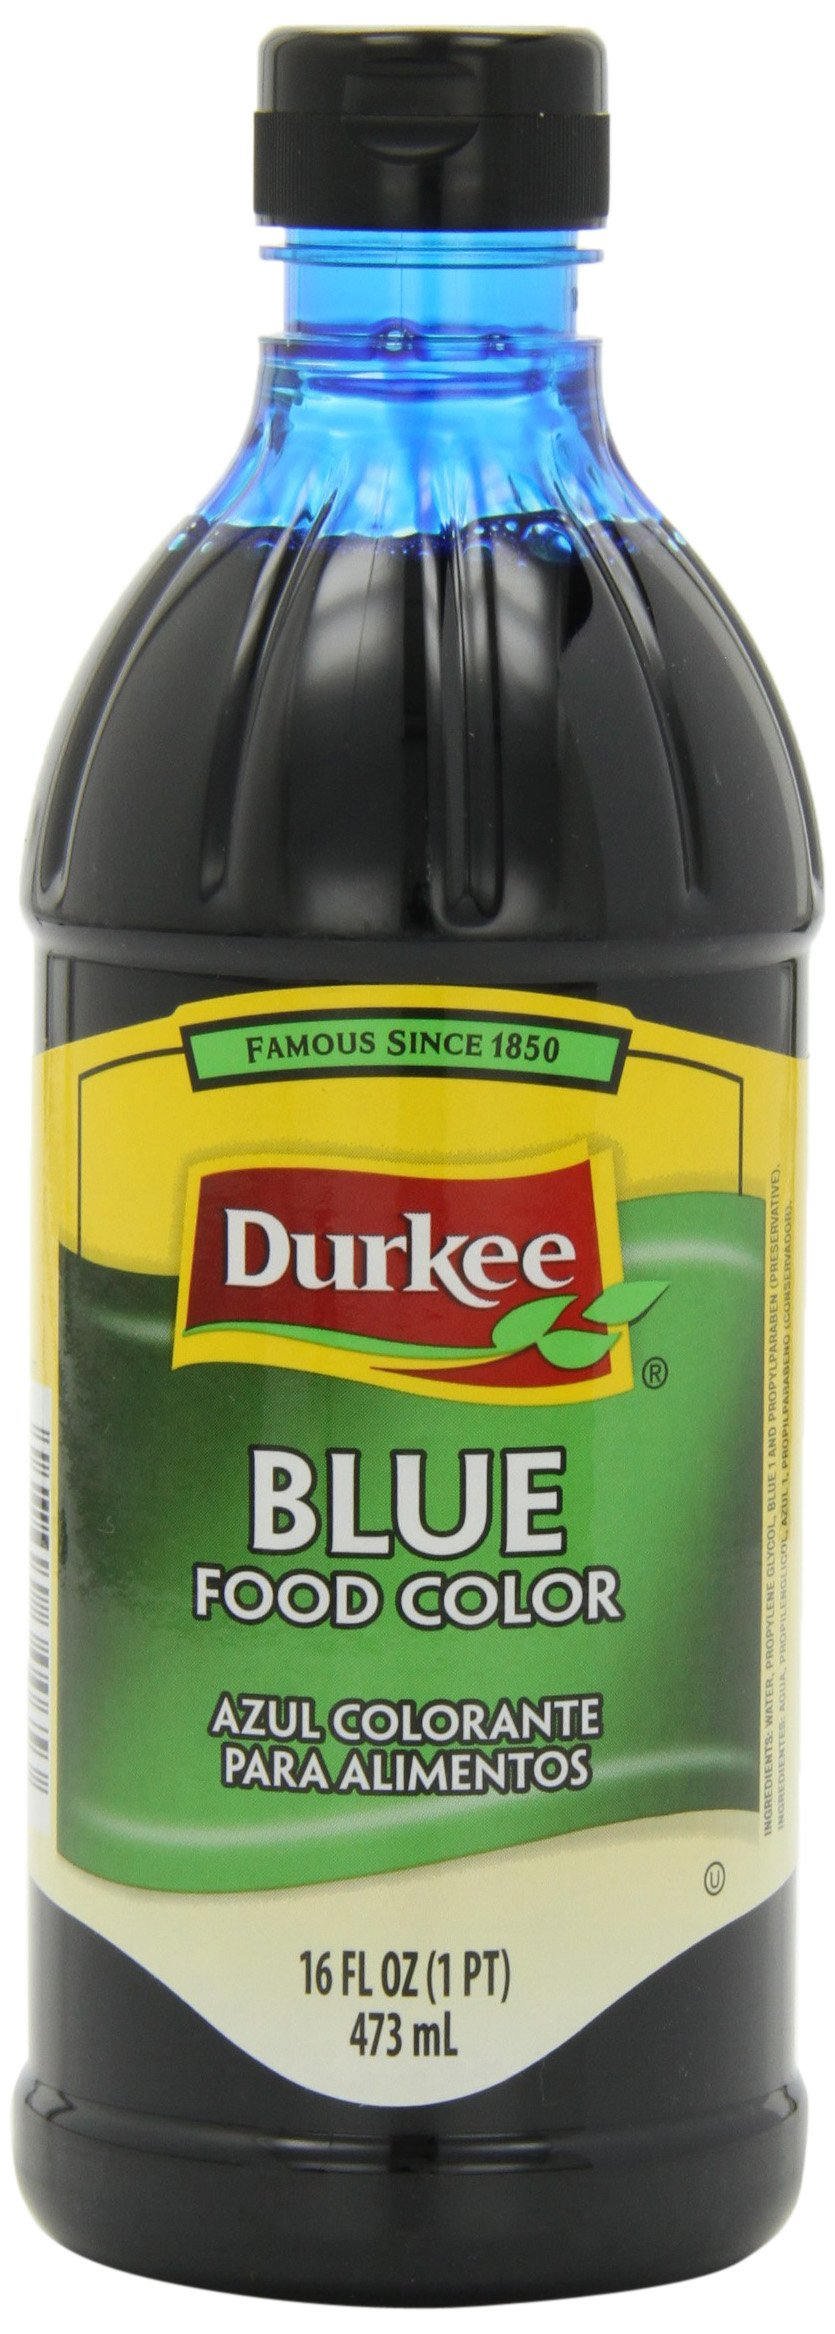 Durkee Blue Food Color, 16-Ounce Containers (Pack of 3) by Durkee (Image #1)